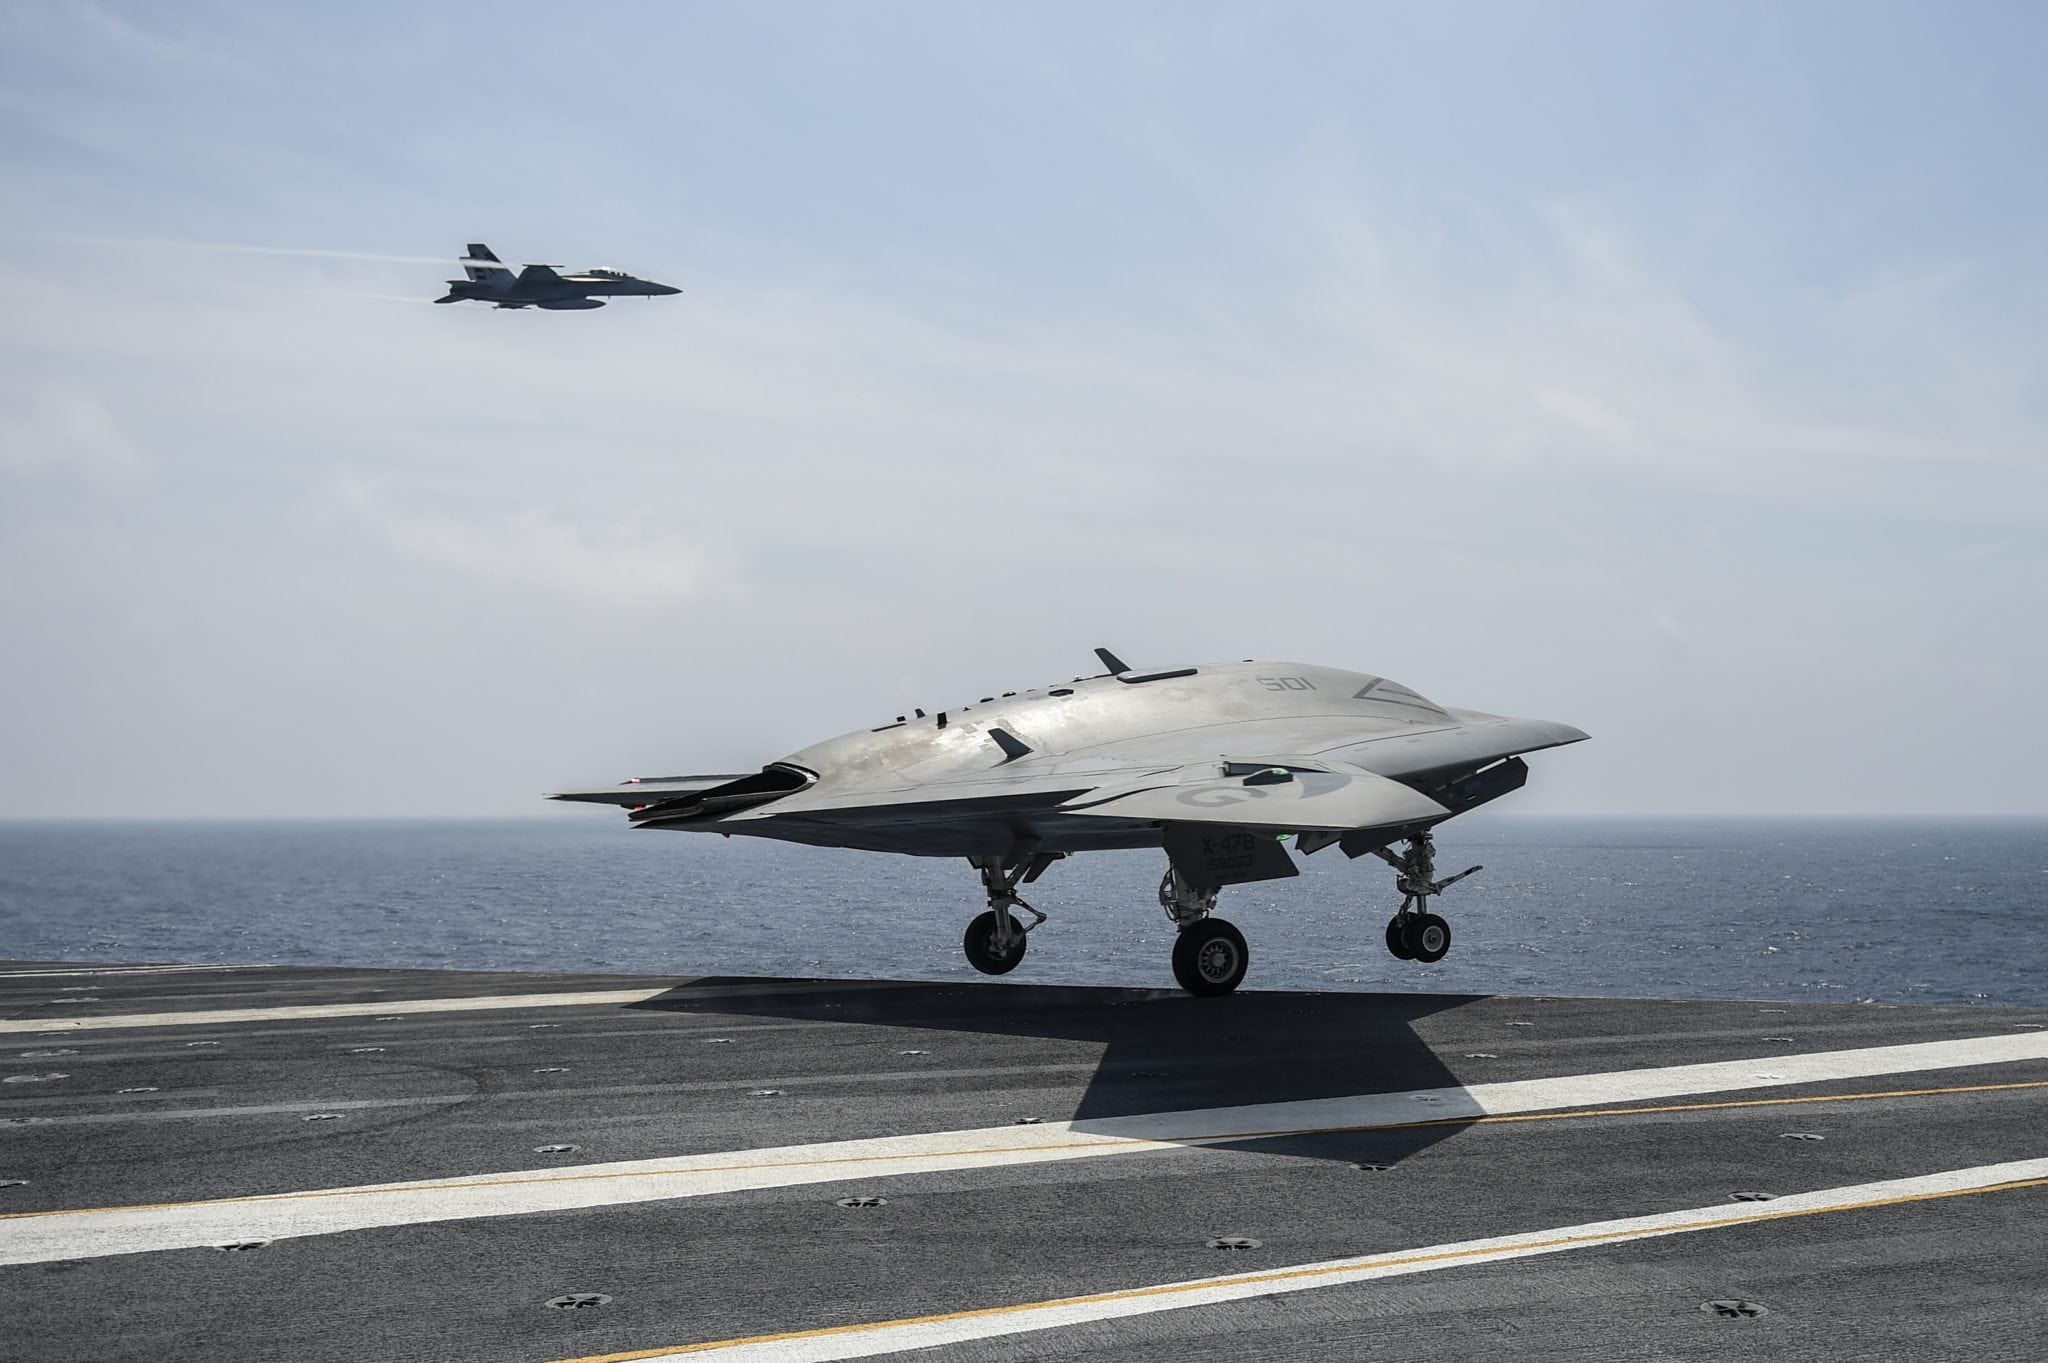 X-47B UAS taking off from a carrier in the Eastern Atlantic